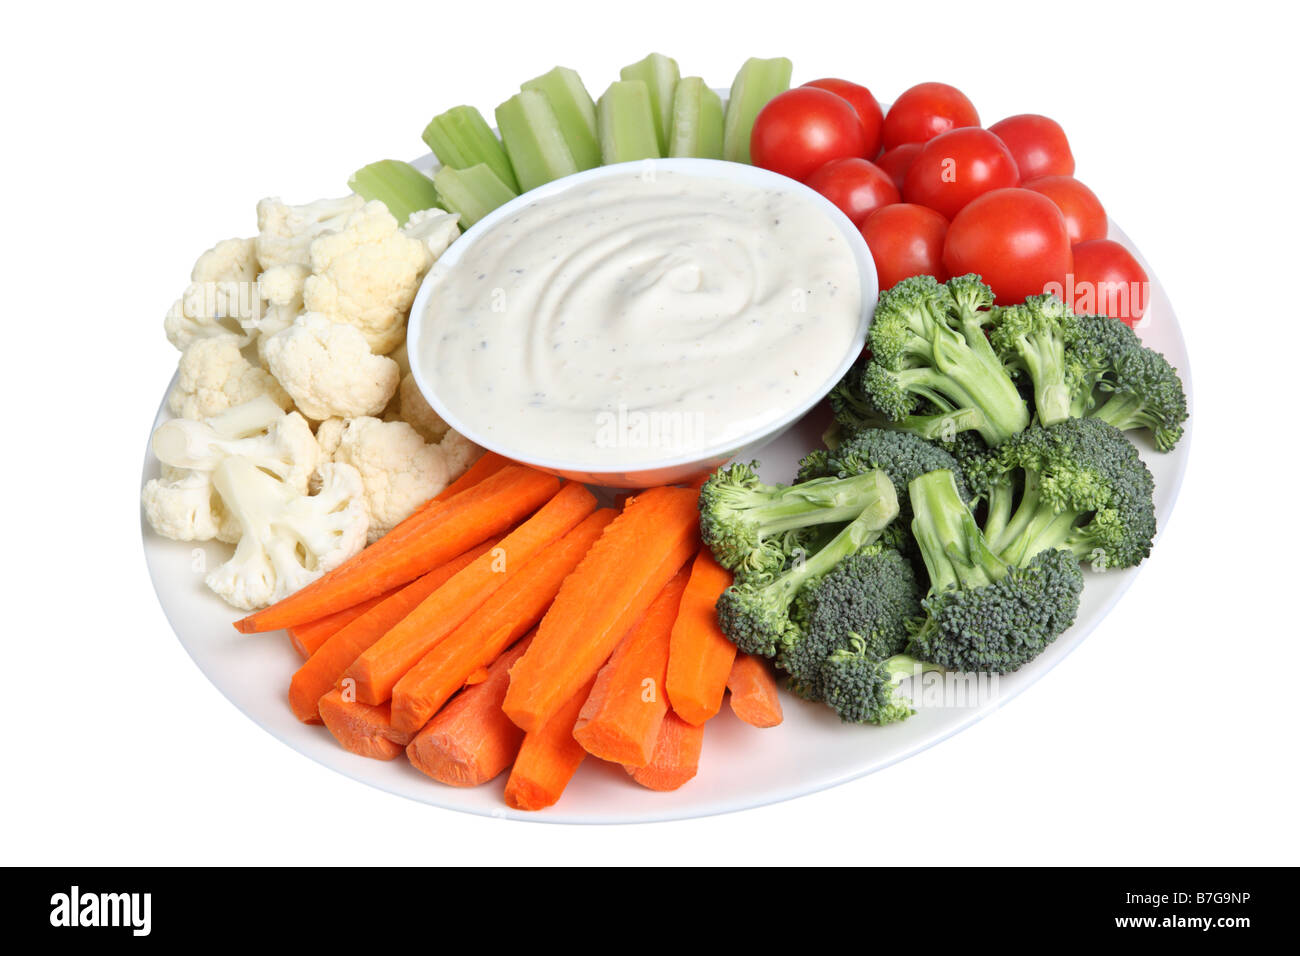 Vegetable tray with cauliflower celery tomatoes broccoli carrot sticks and ranch dip - Stock Image